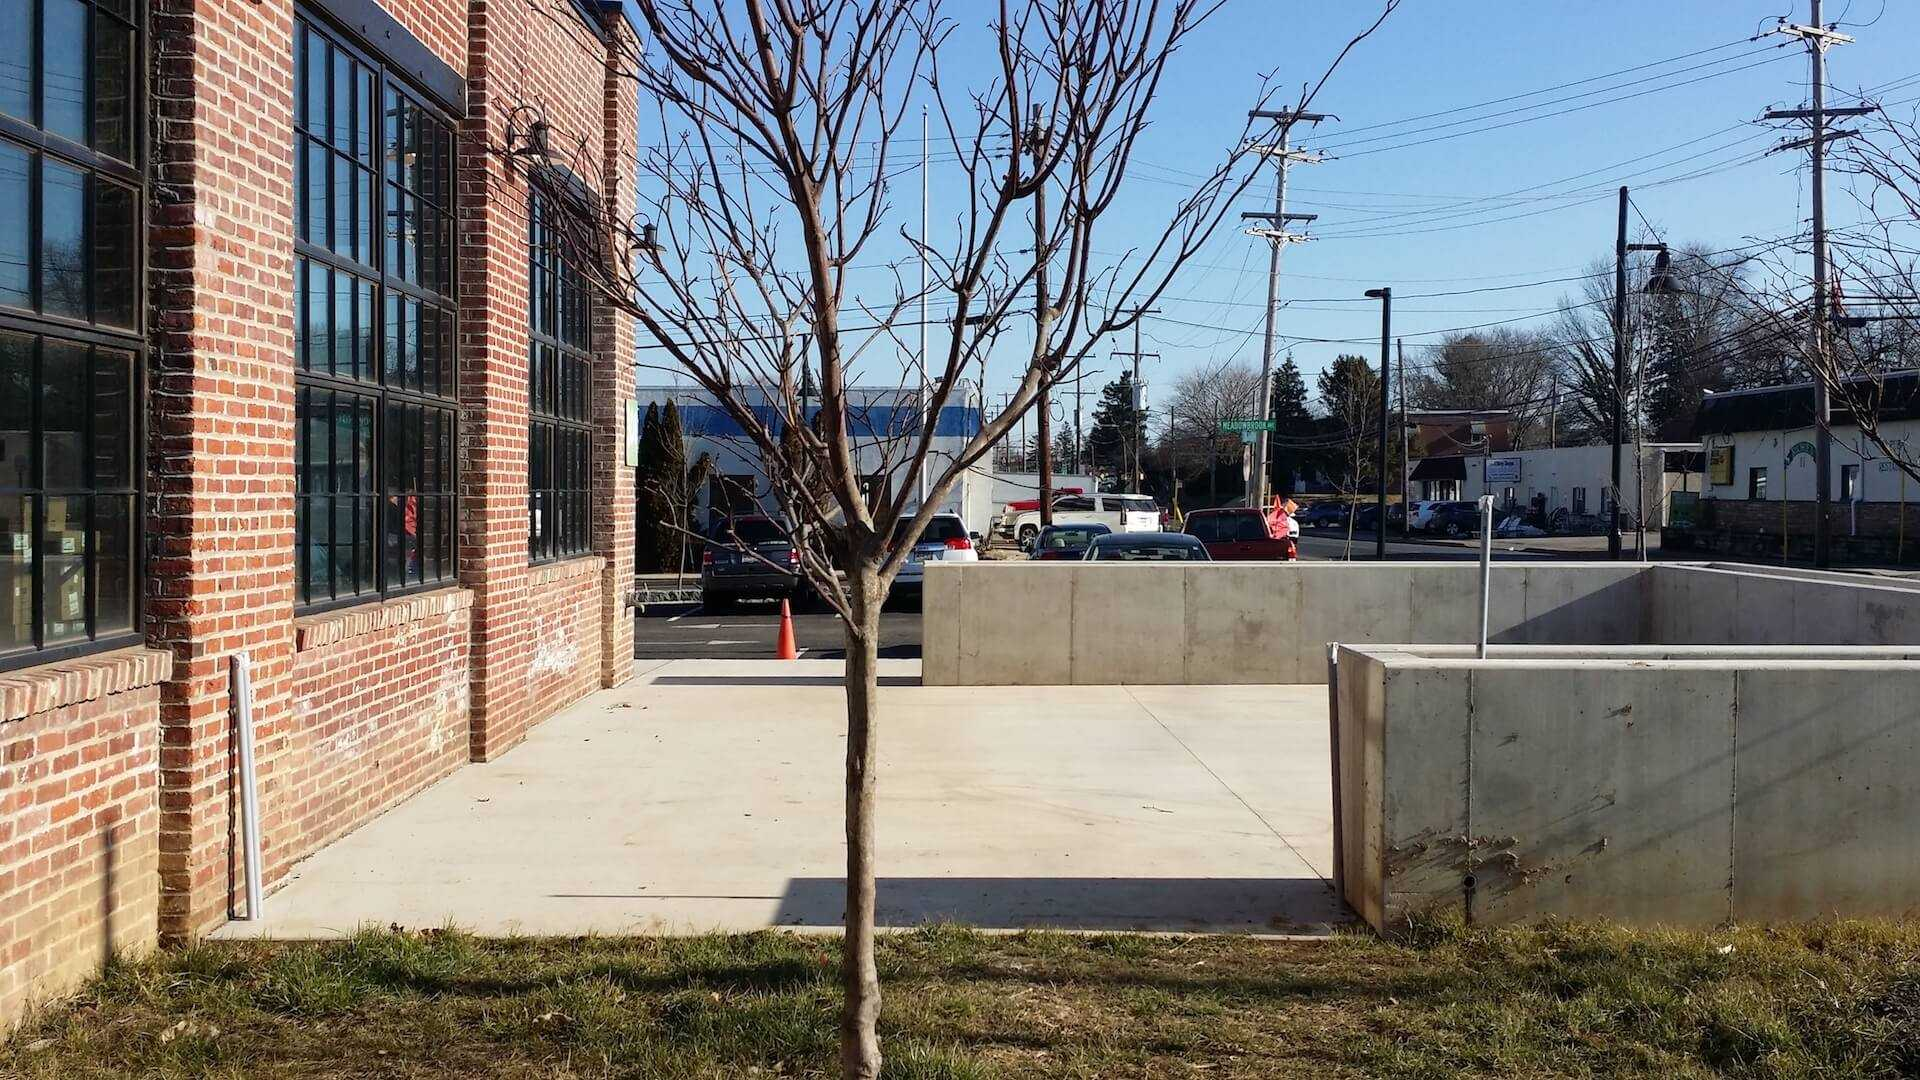 thin tree in front of concrete area